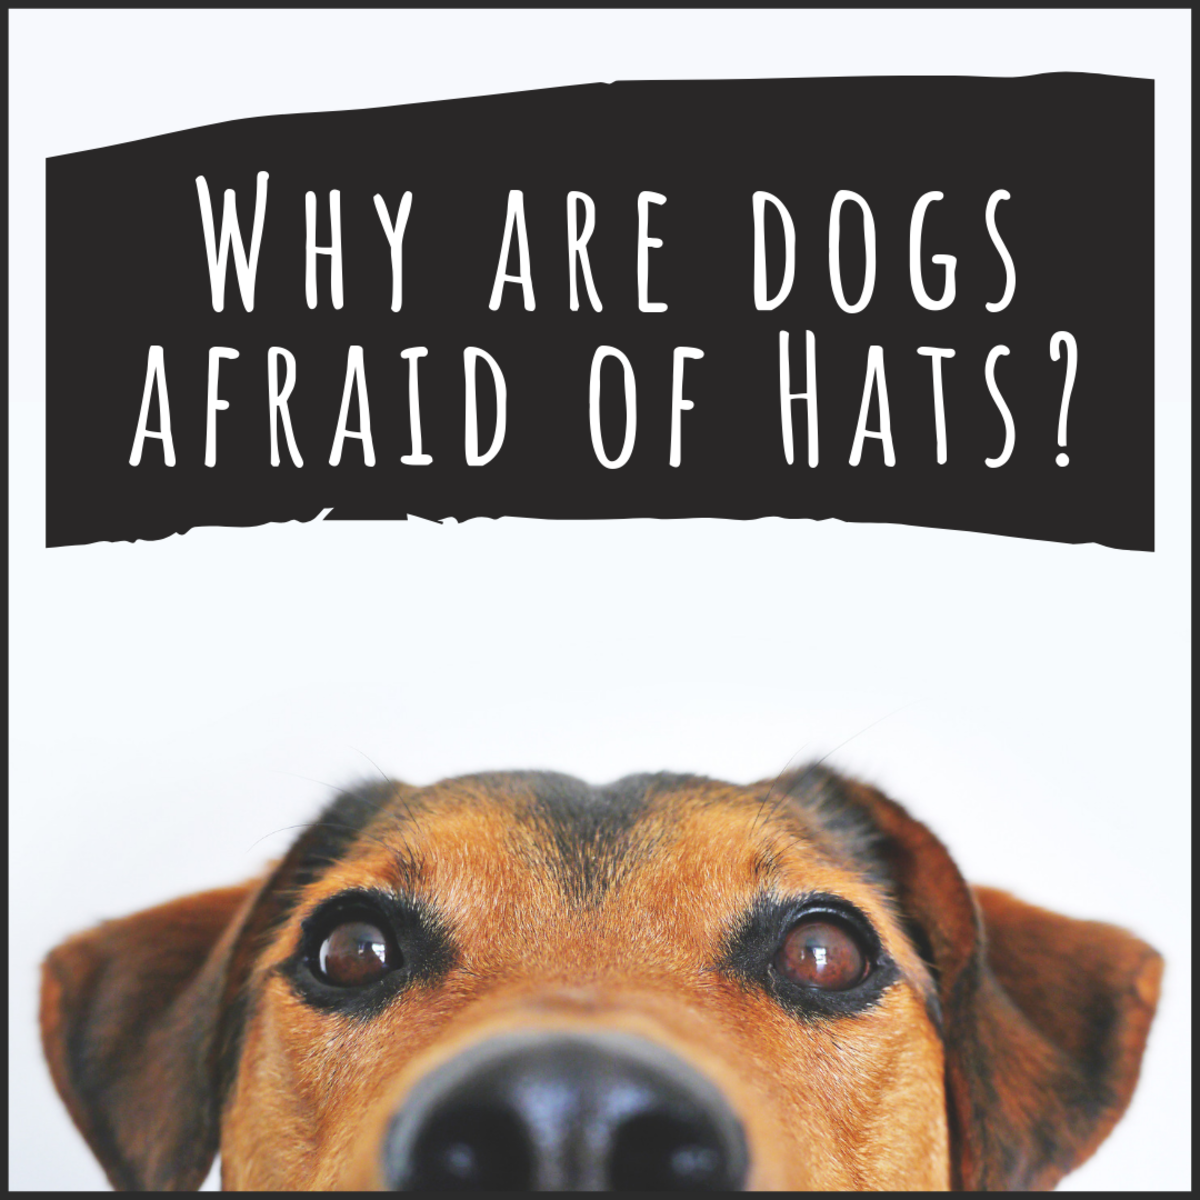 Many dogs are afraid of hats, but don't worry—there are things you can do to help.